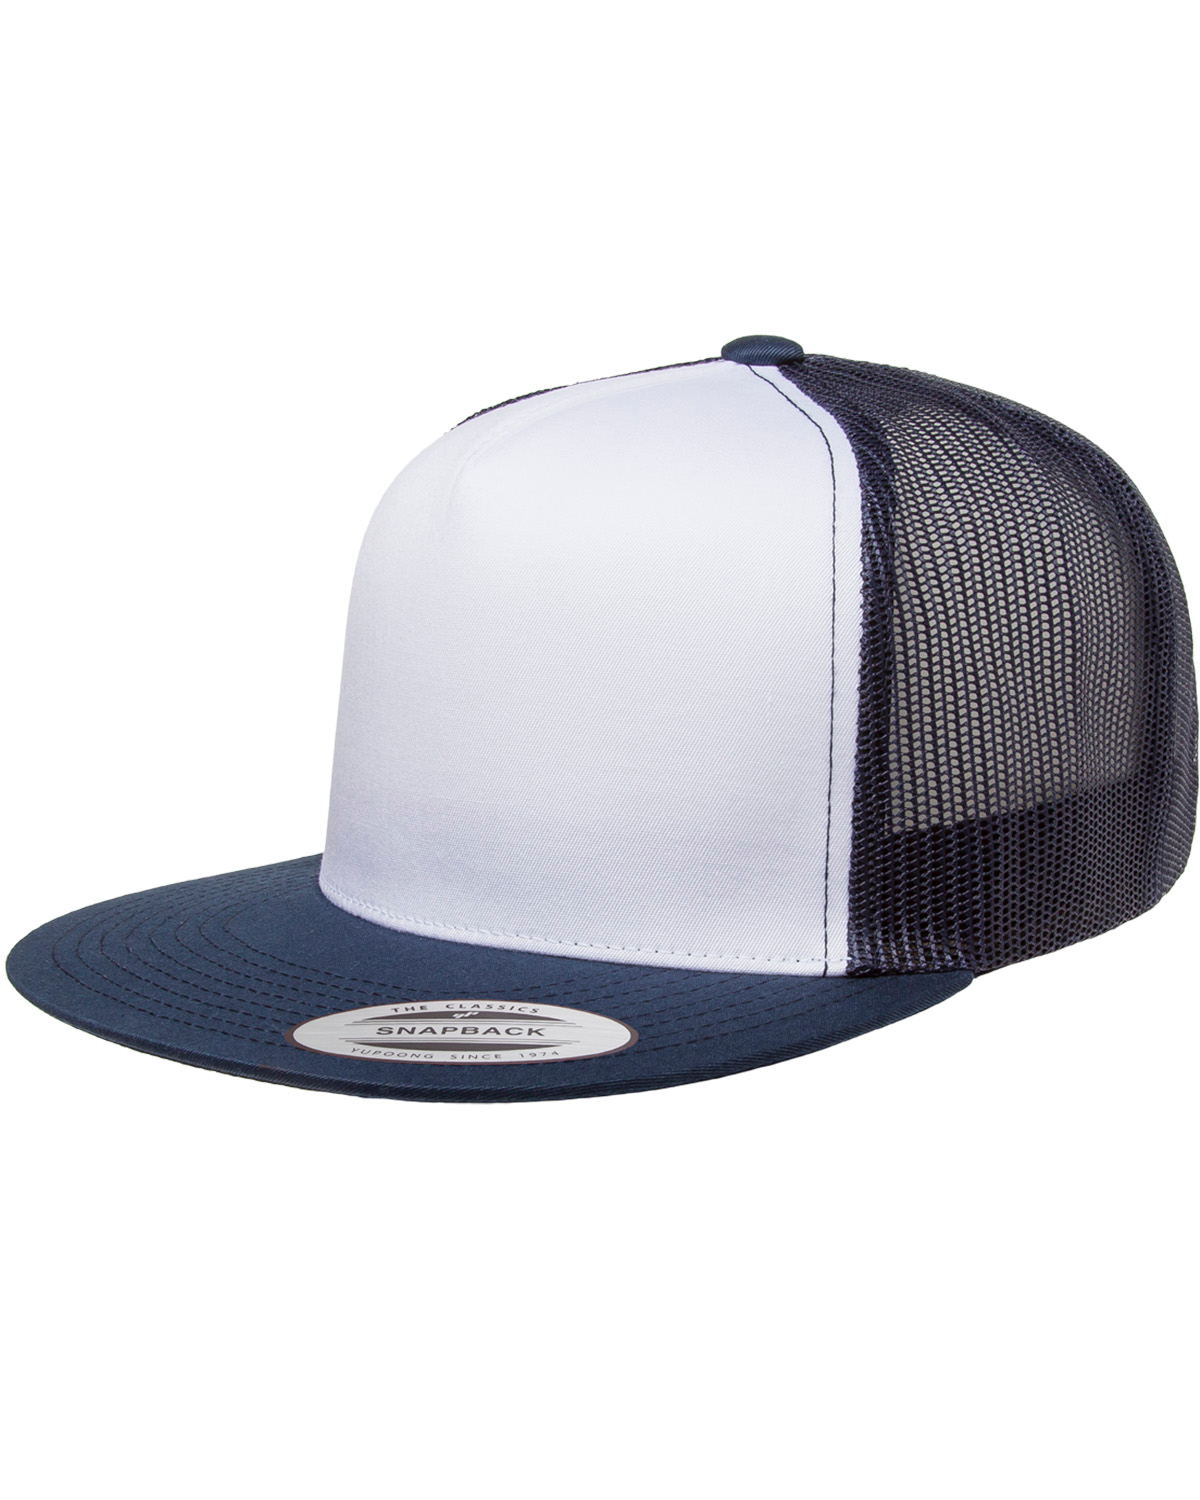 click to view Navy/ Wht/ Navy